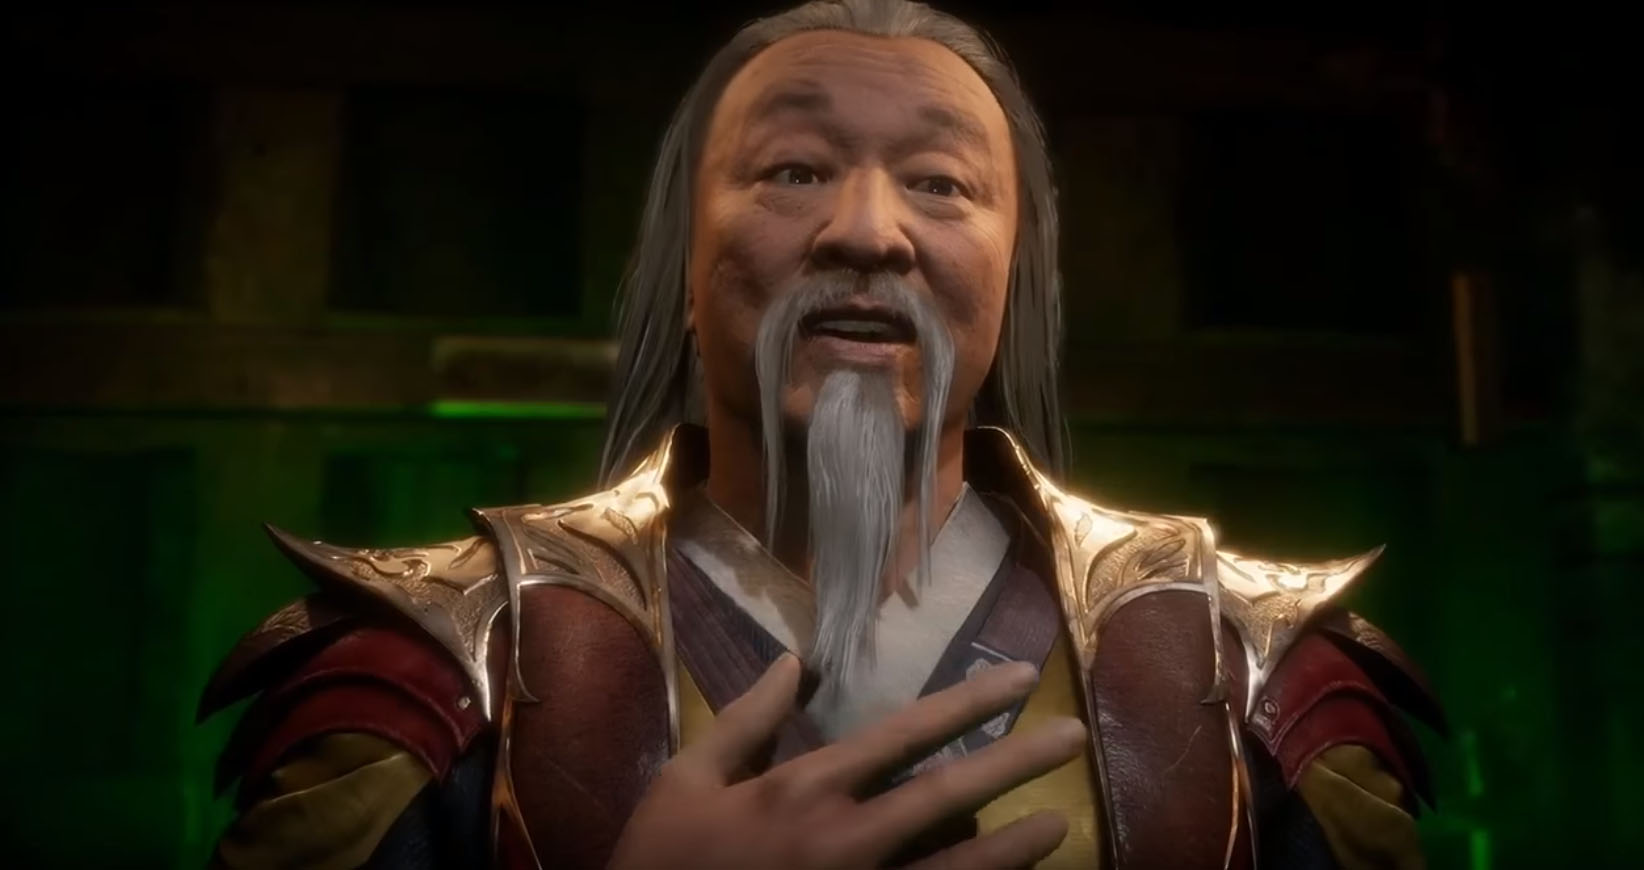 Shang Tsung Revealed as the First DLC Fighter in Mortal Kombat 11